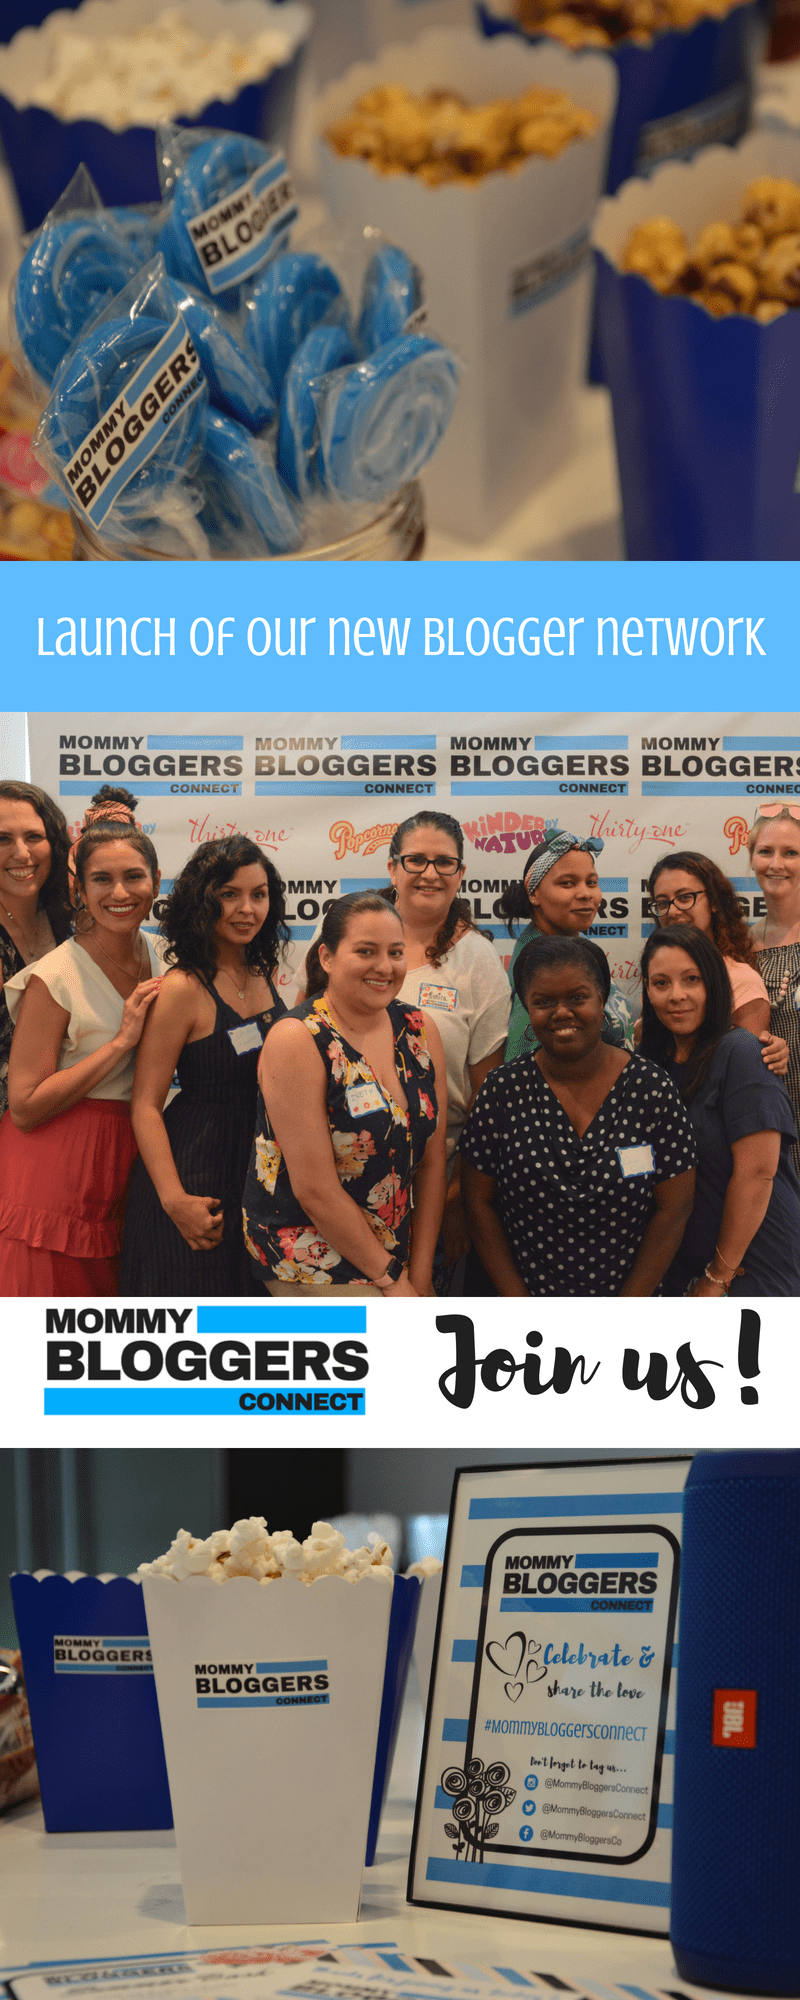 New BLOGGER NETWORK - Join us at Mommy Bloggers Connect - #MommyBloogesConnect #BloggerNetwork